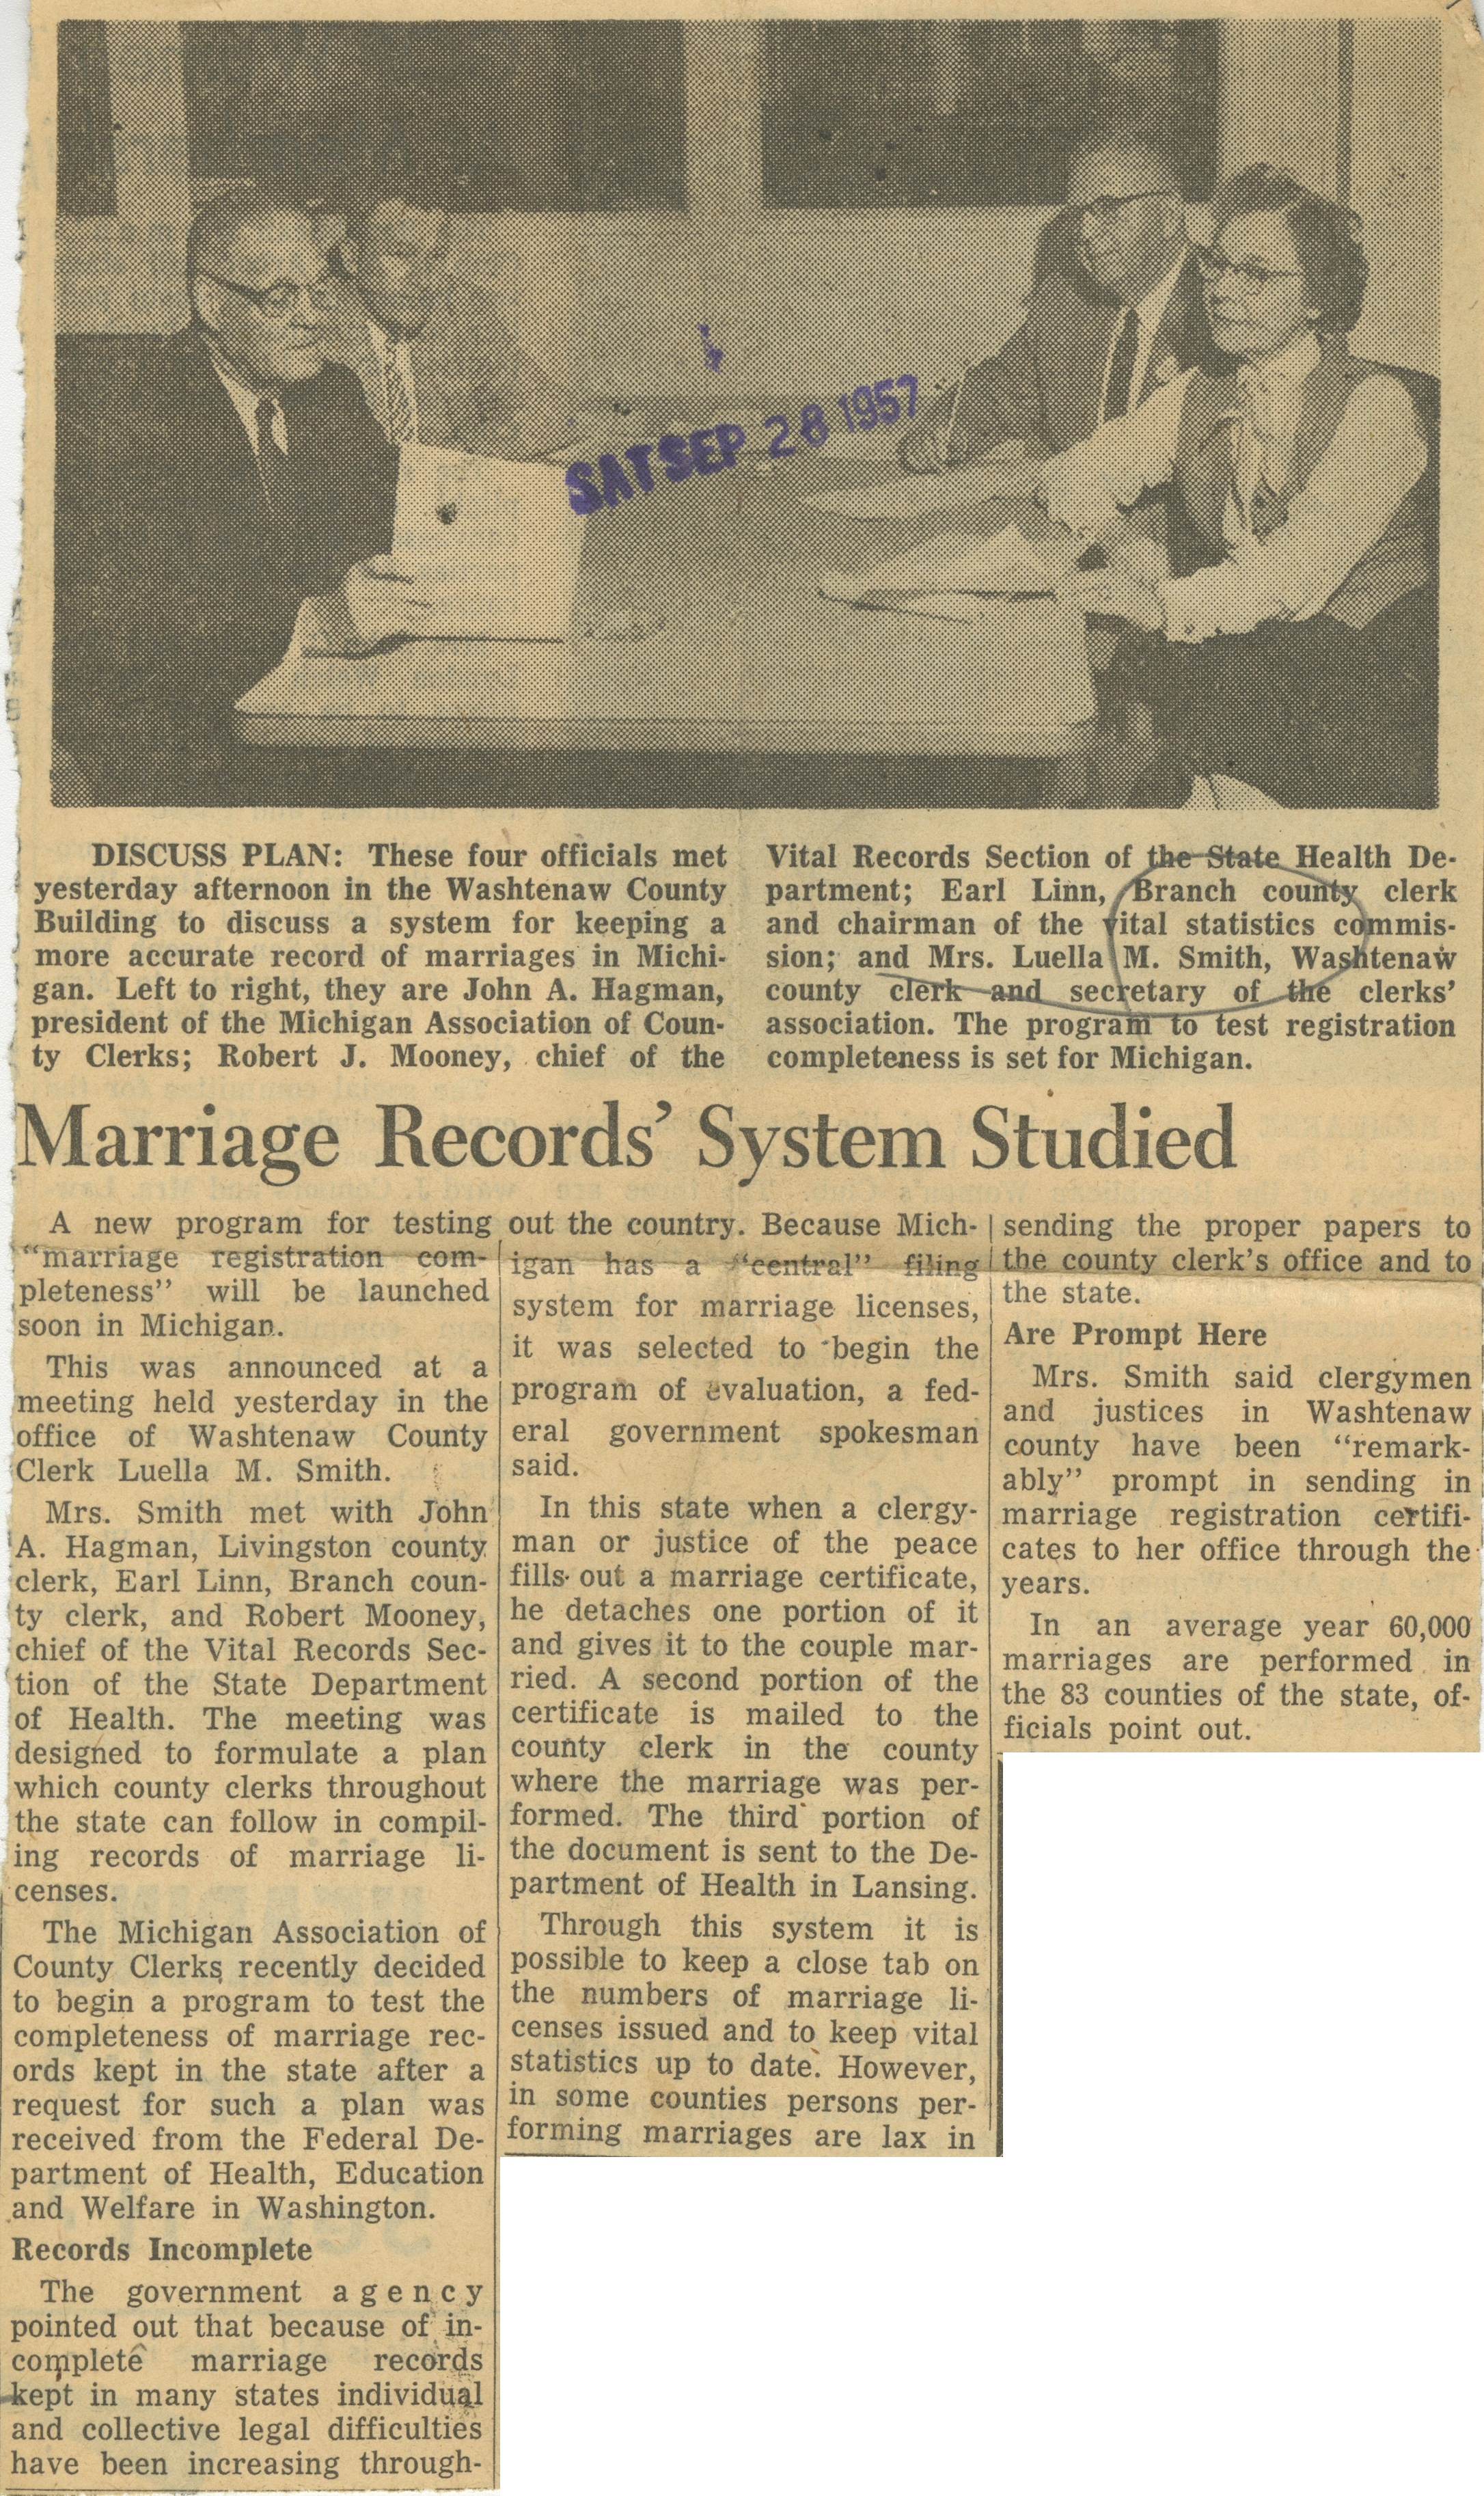 Marriage Records' System Studied image